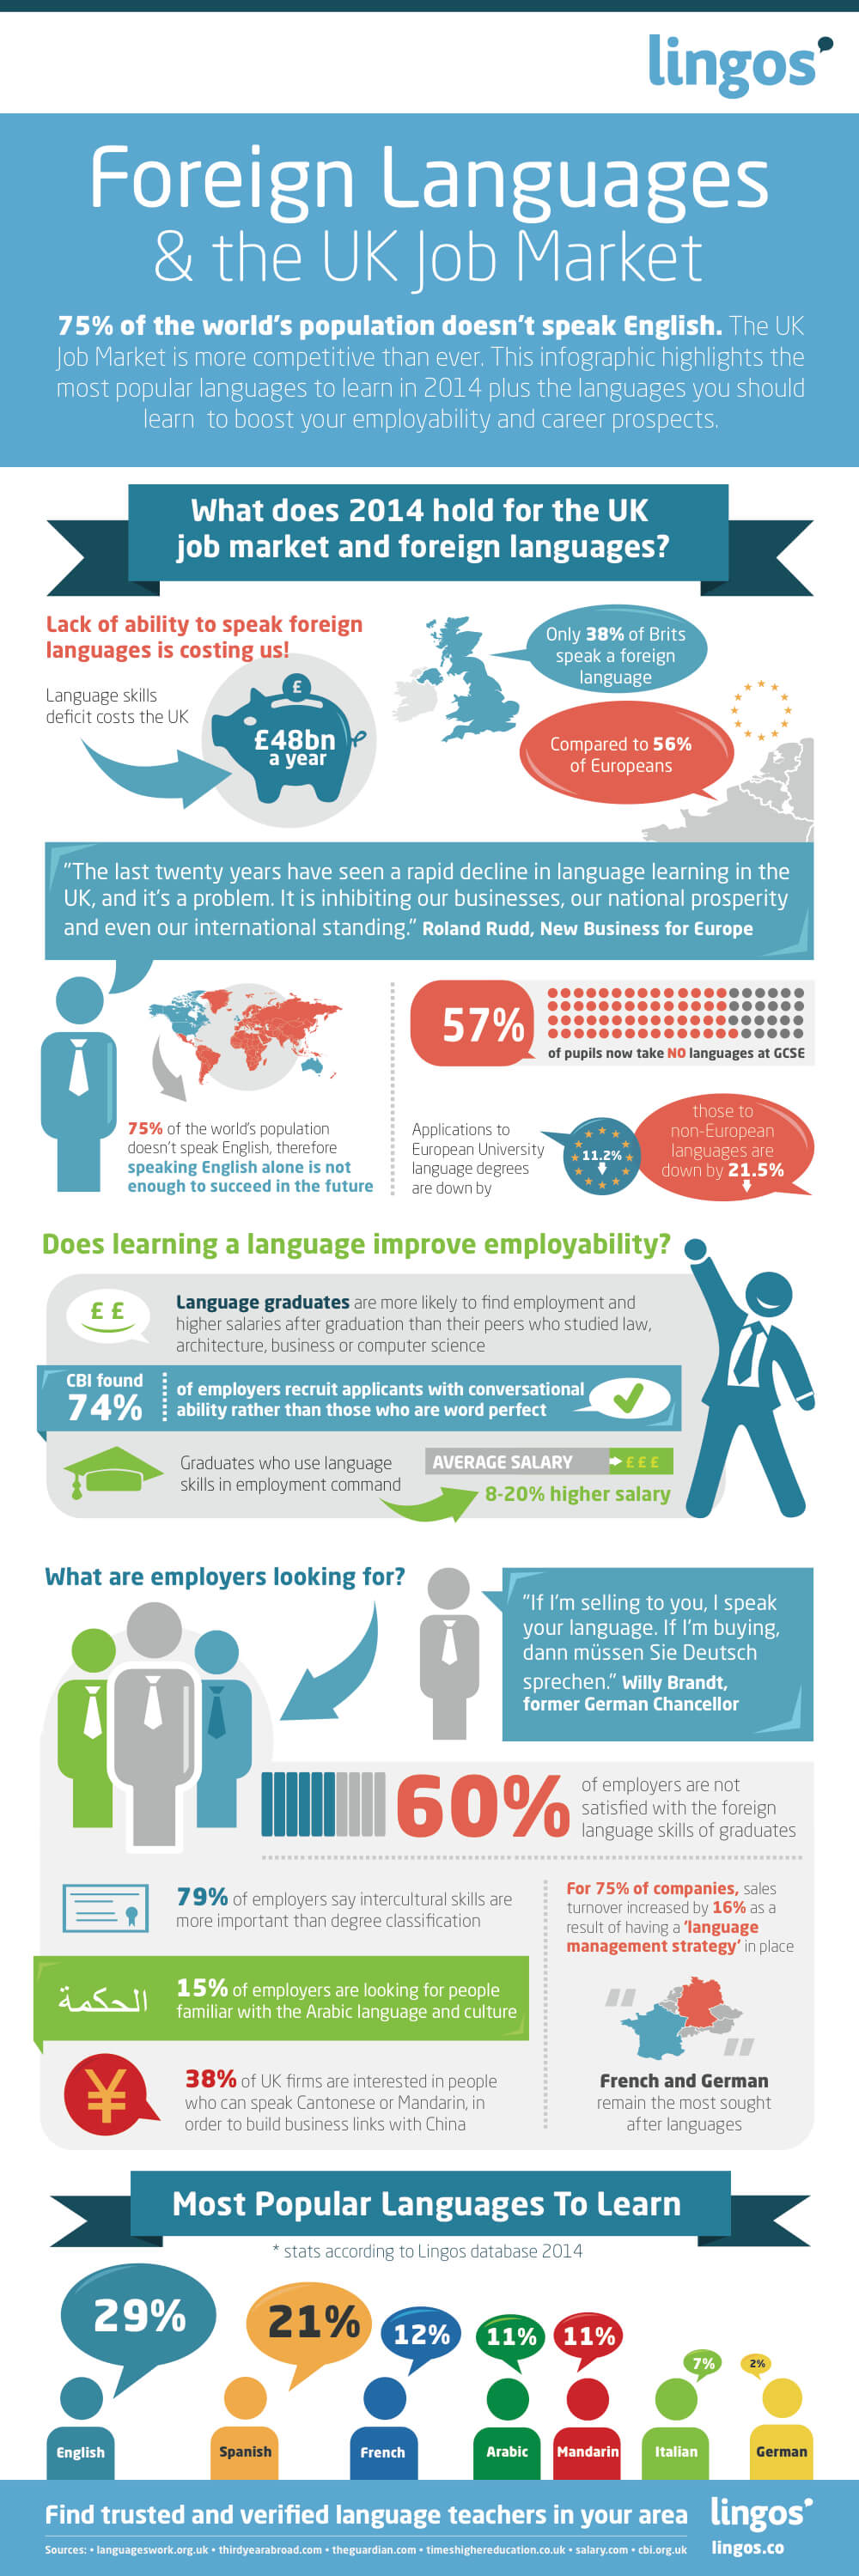 Foreign-Languages-and-UK-Job-Market-INFOGRAPHIC